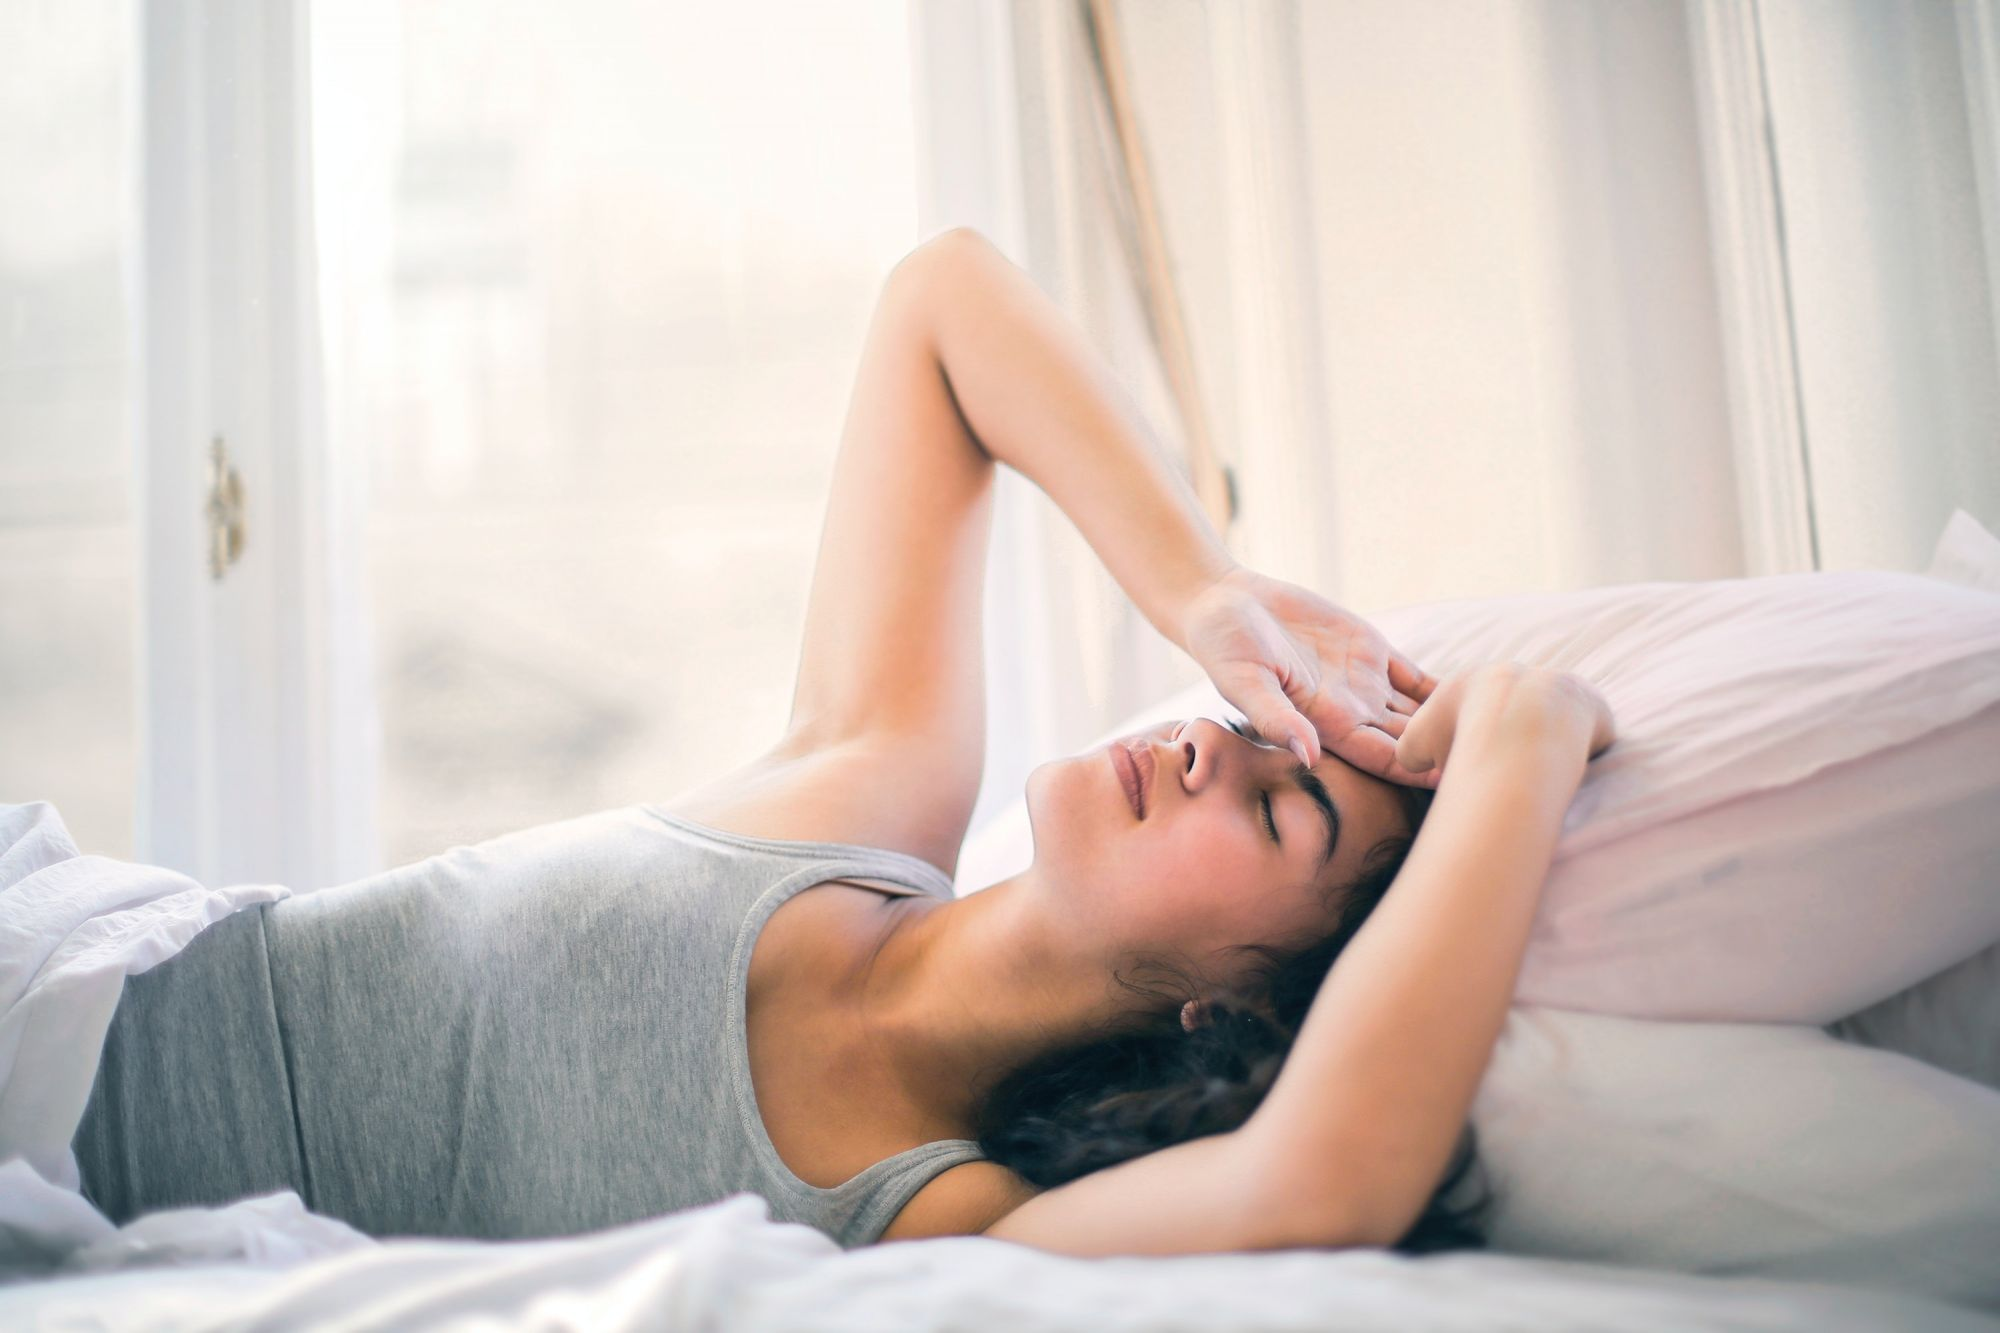 6 Tips To Help Battle Insomnia